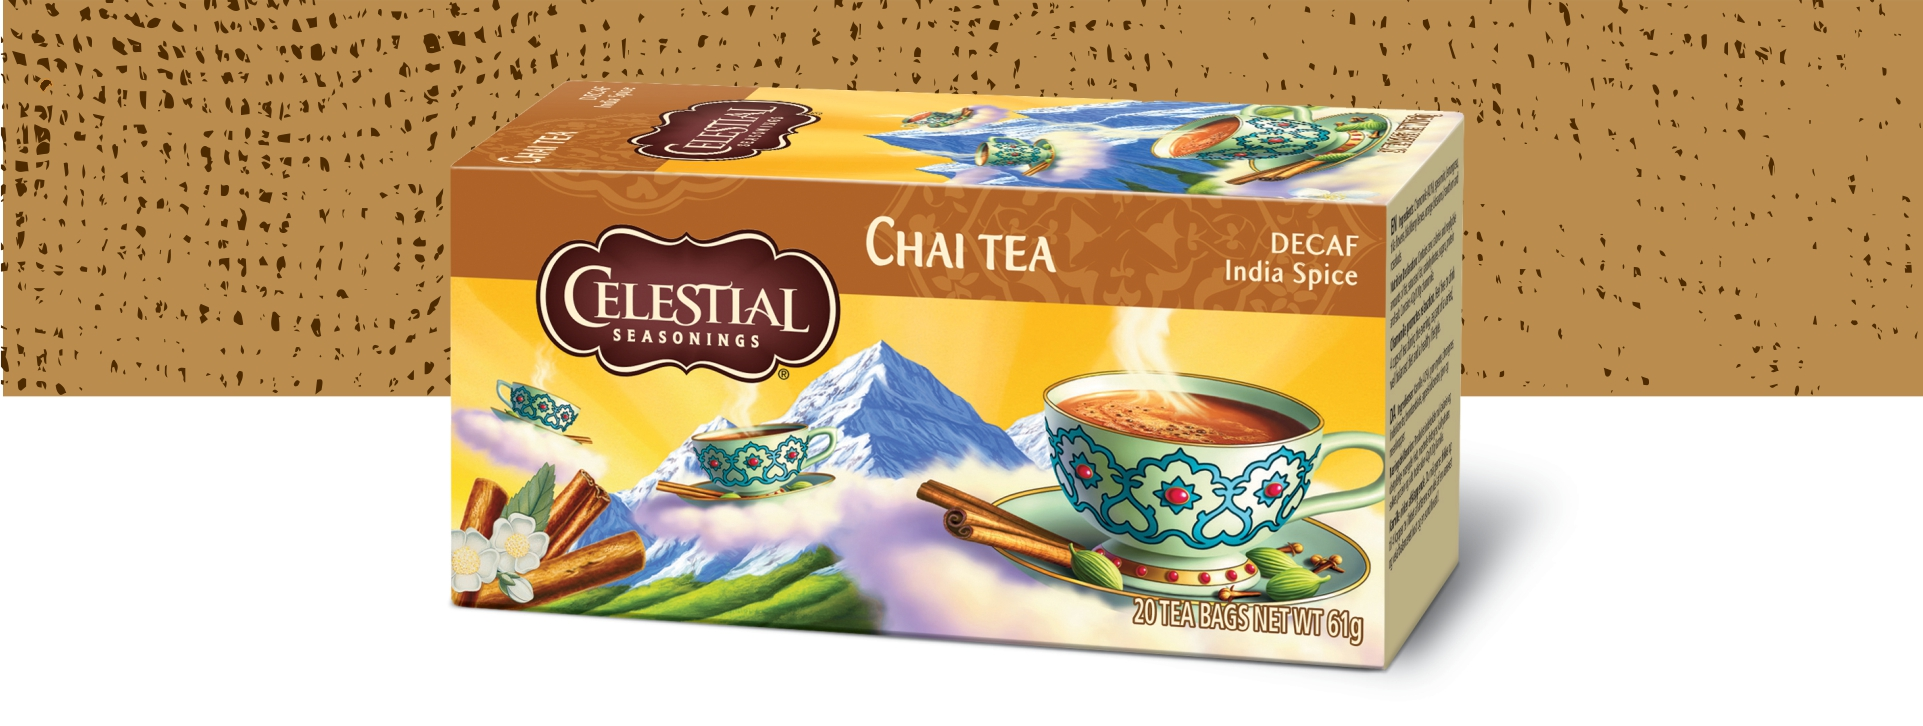 decaf_india_spice_chai_titel